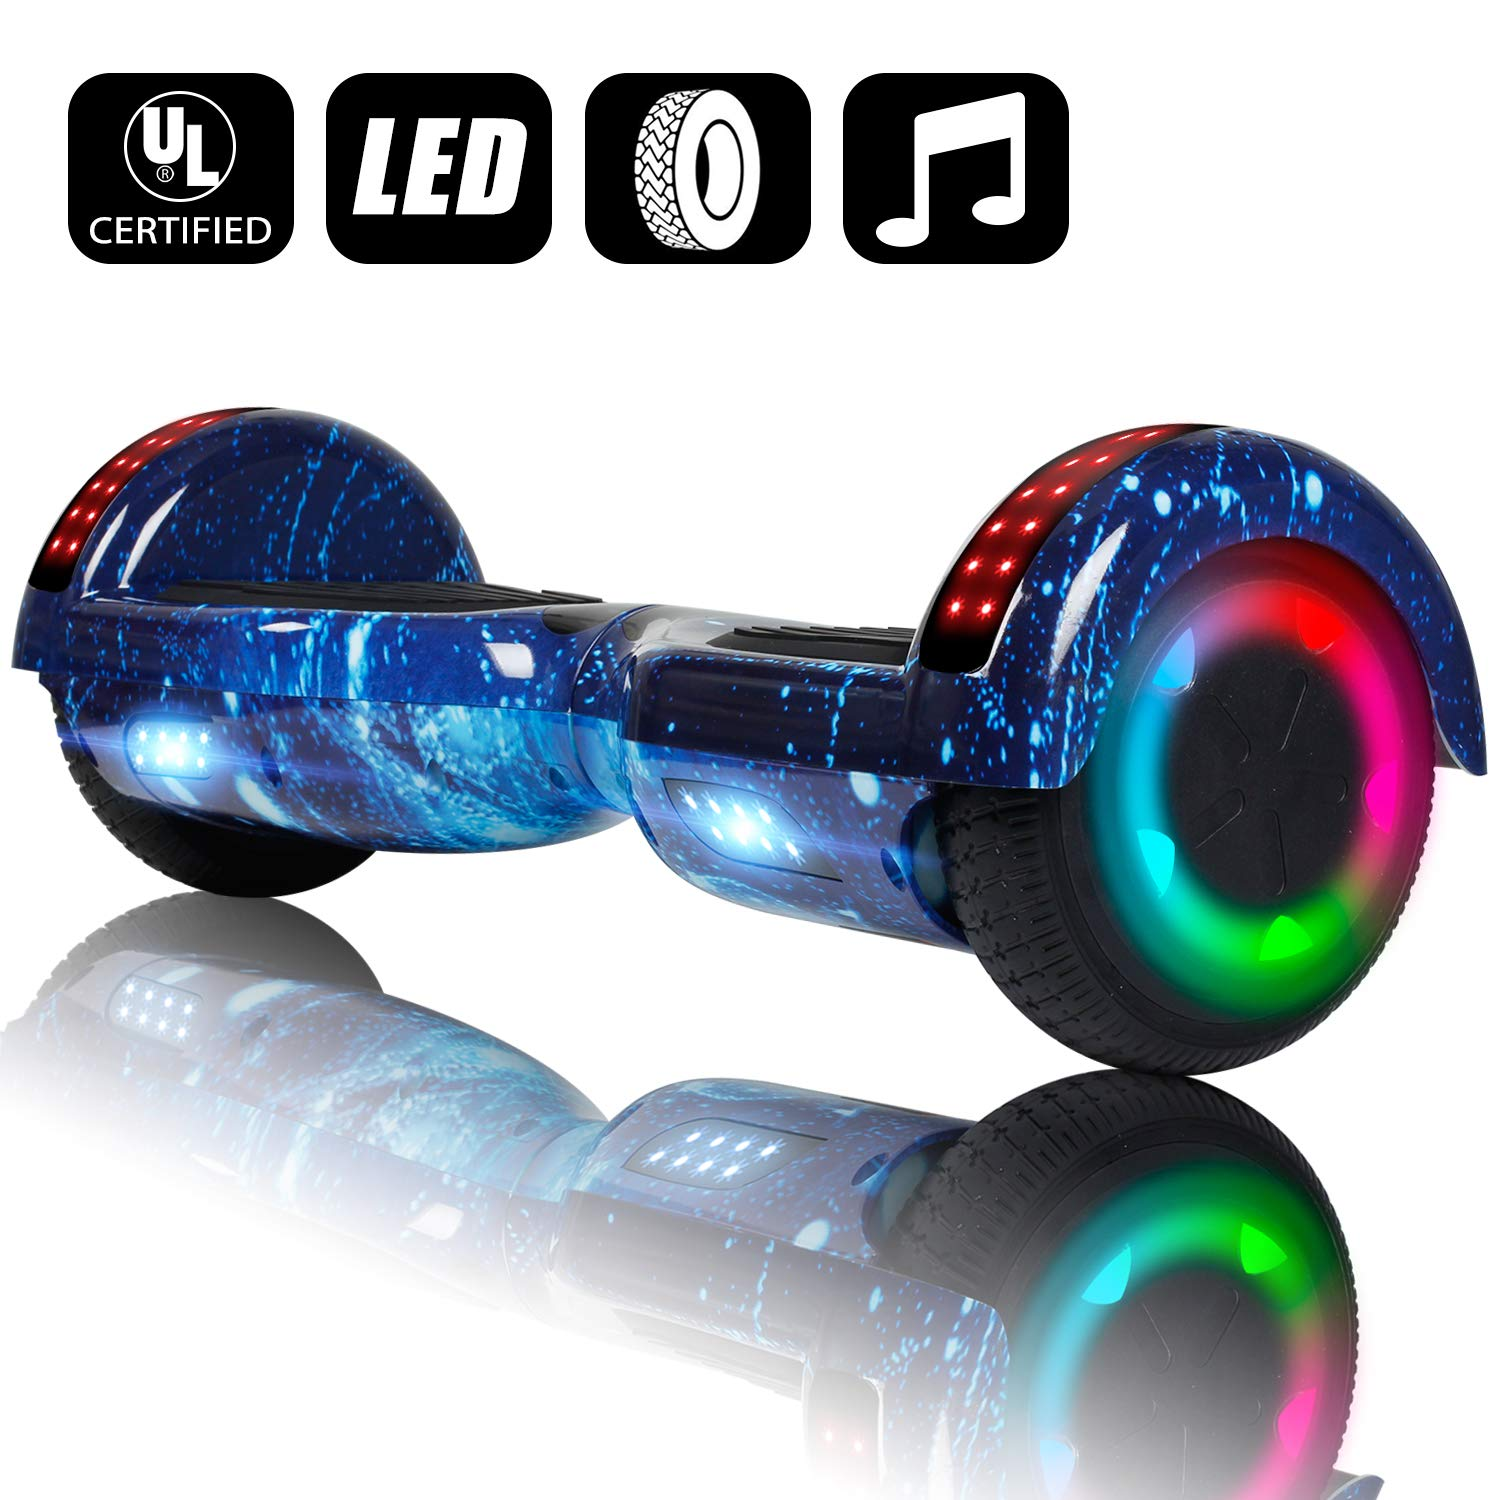 VEVELINE Hoverboard UL2272 Certified 6.5 inch Self Balancing Scooter with Colorful Flash Wheel Top LED Light, Built-in Bluetooth Speaker,Hover Board for Kids Adults Free Carry Bag(Starry Sky) by VEVELINE